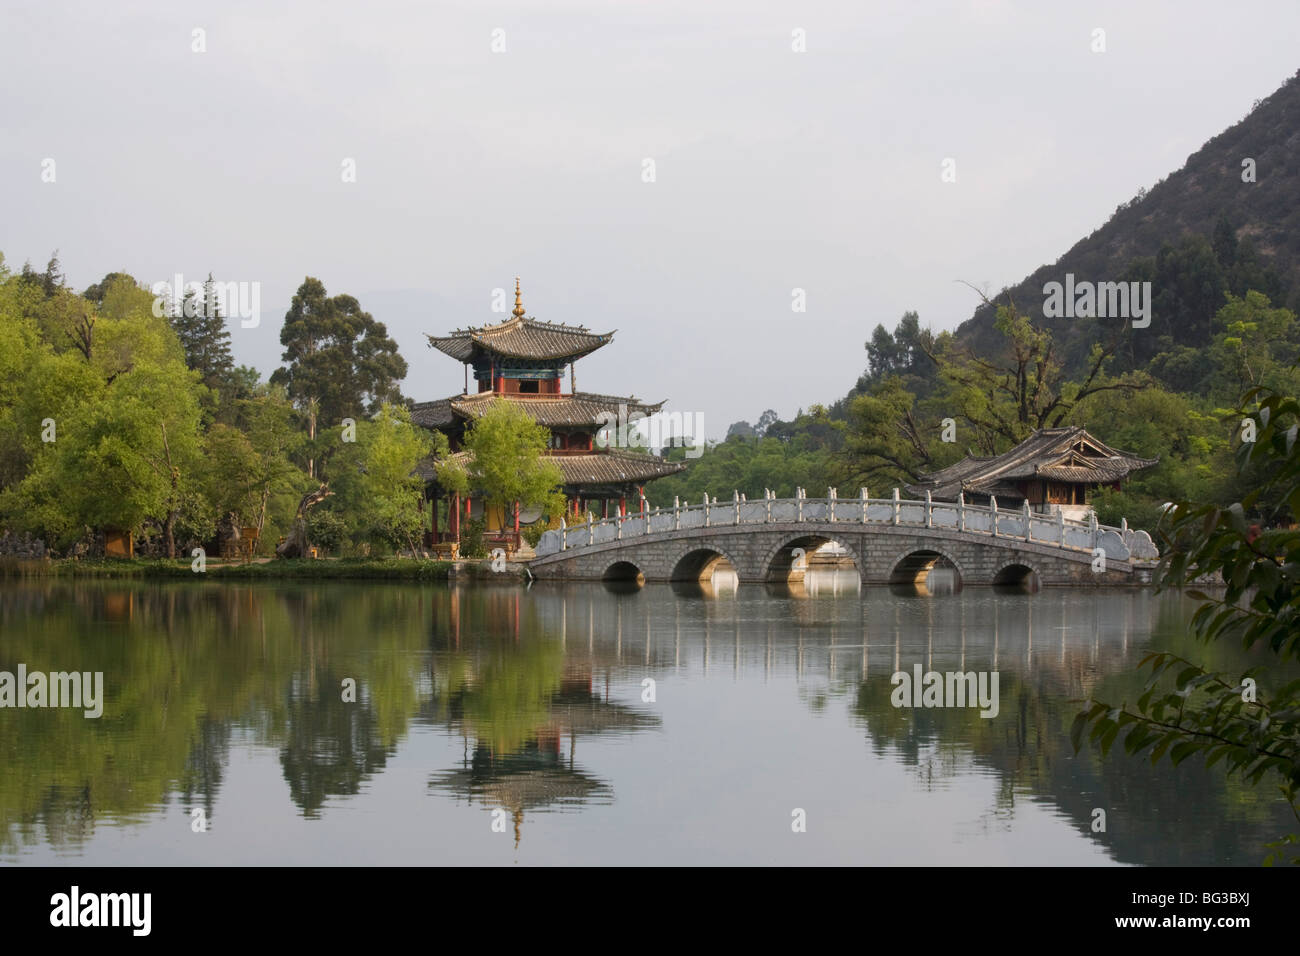 The Black Dragon Pool Park, Lijiang, Yunnan Province, China, Asia - Stock Image